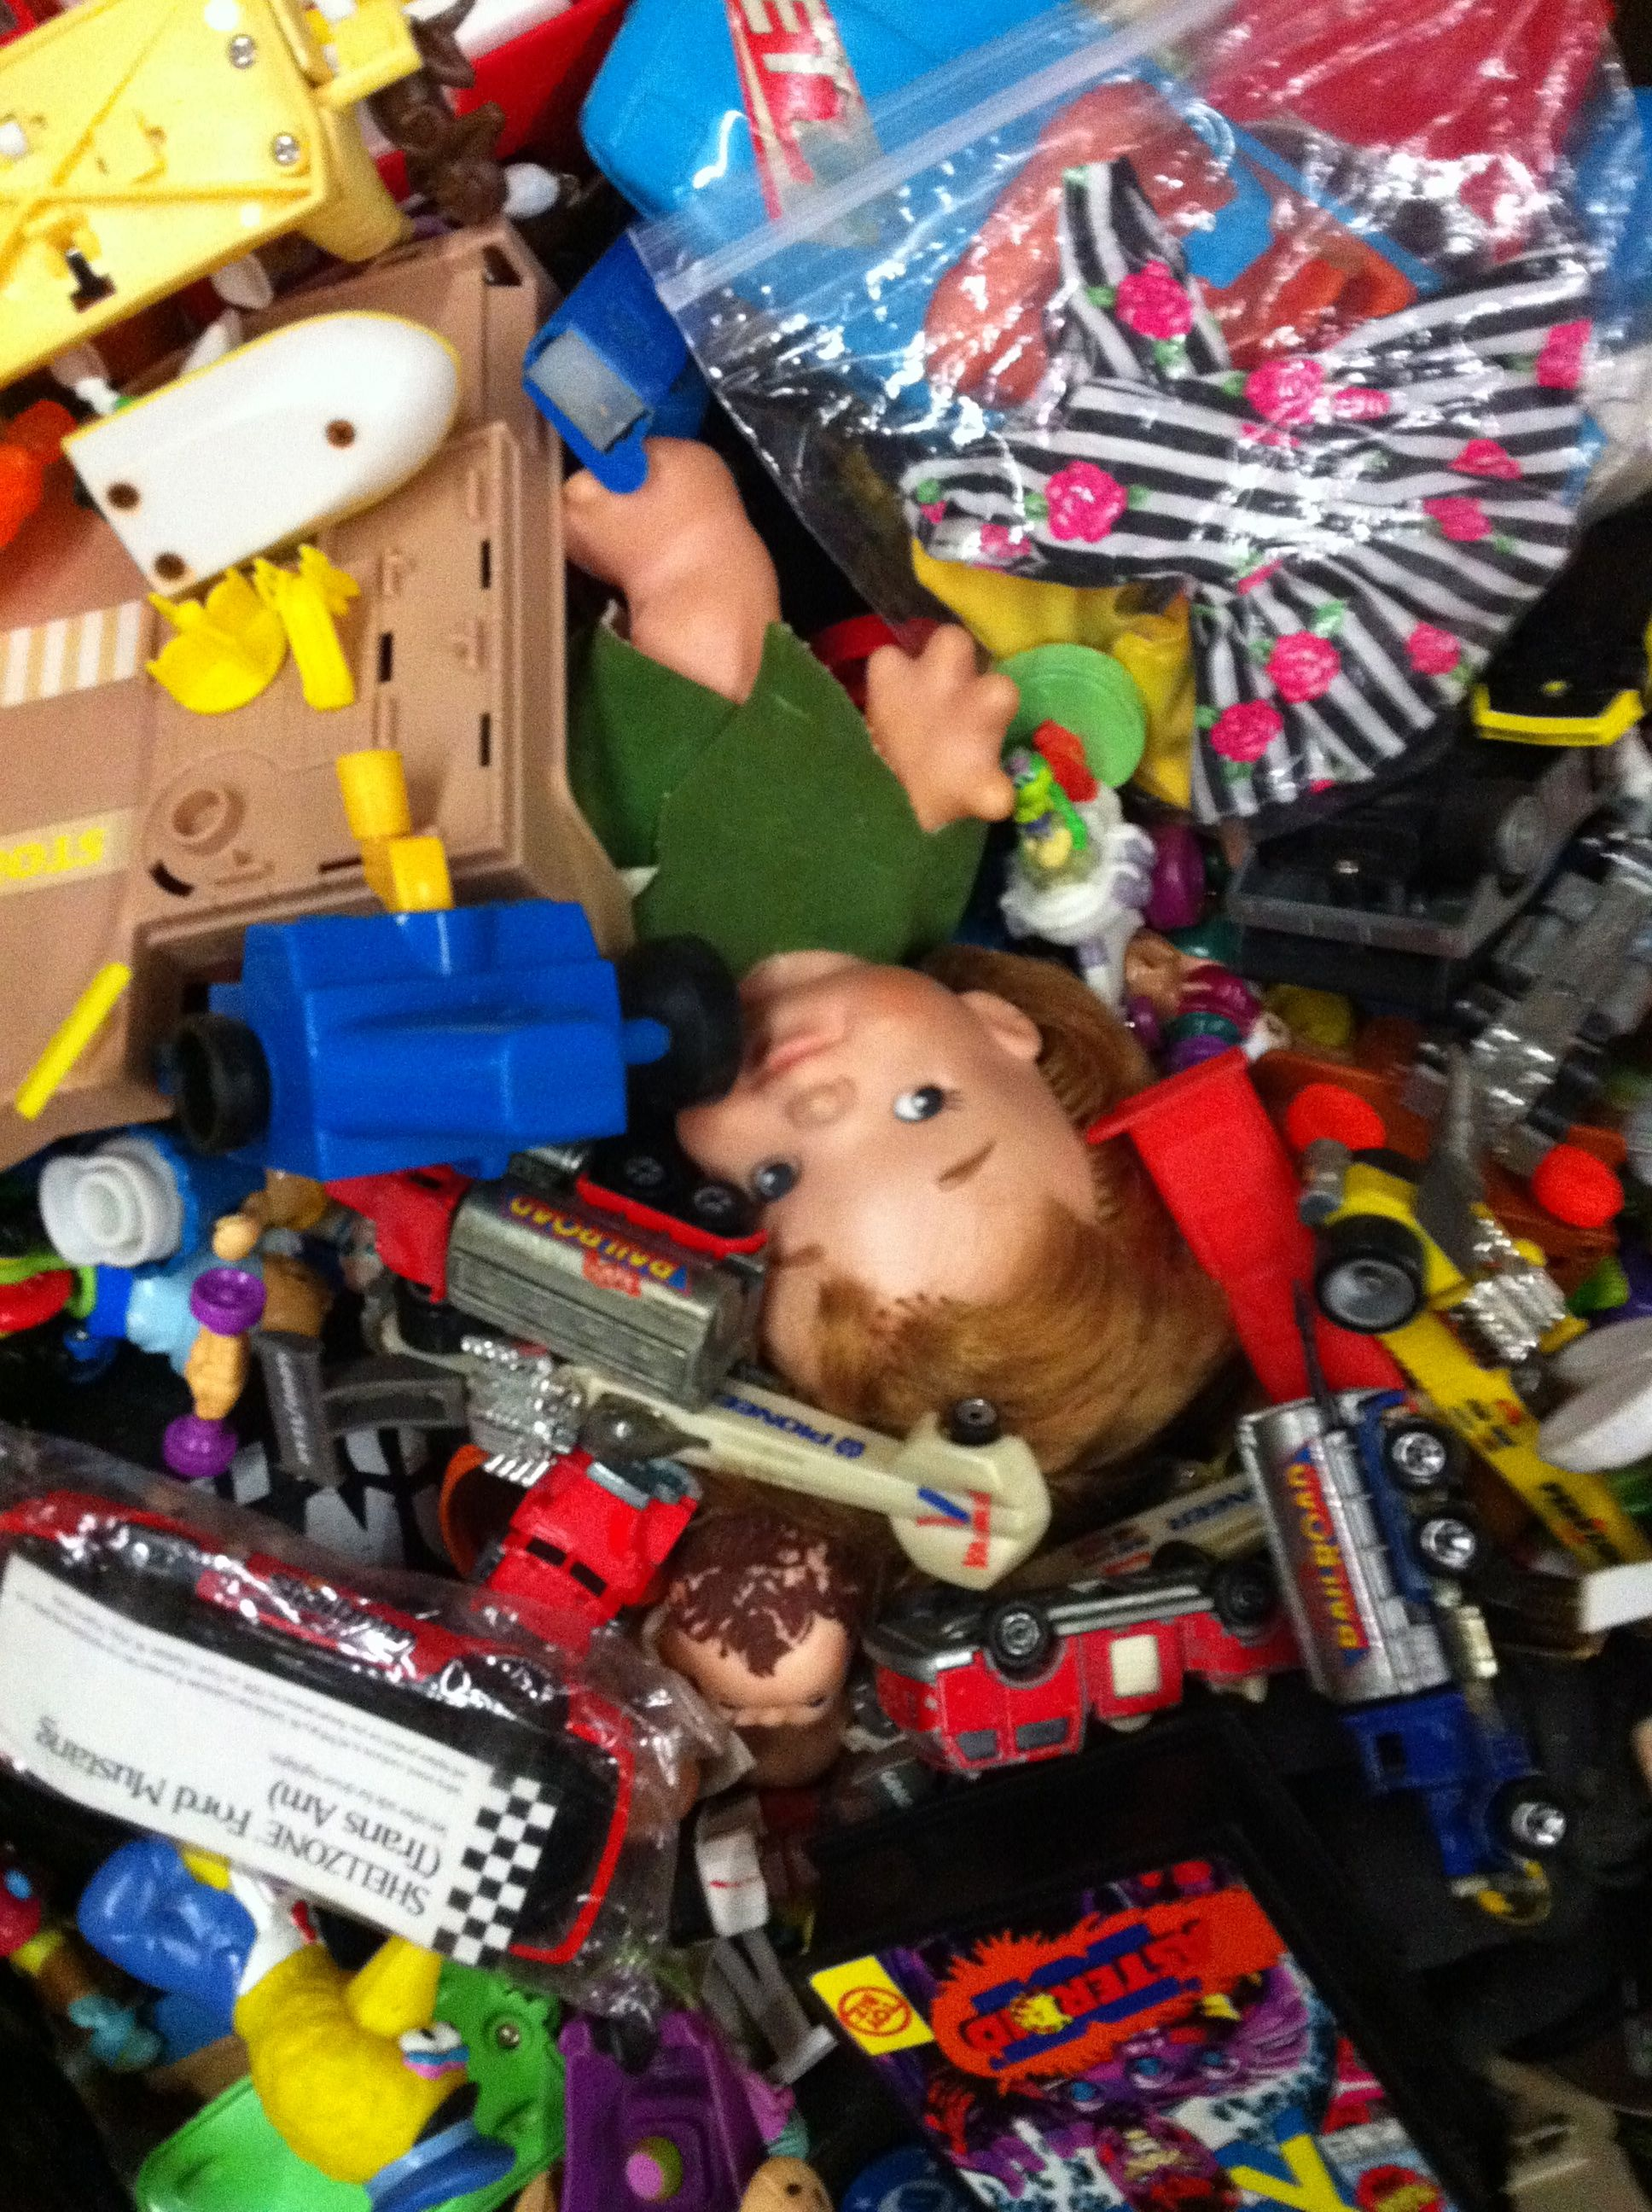 DKE Toys Blog Archive DKE Toys 5th Annual Graveyard & Garage Sale